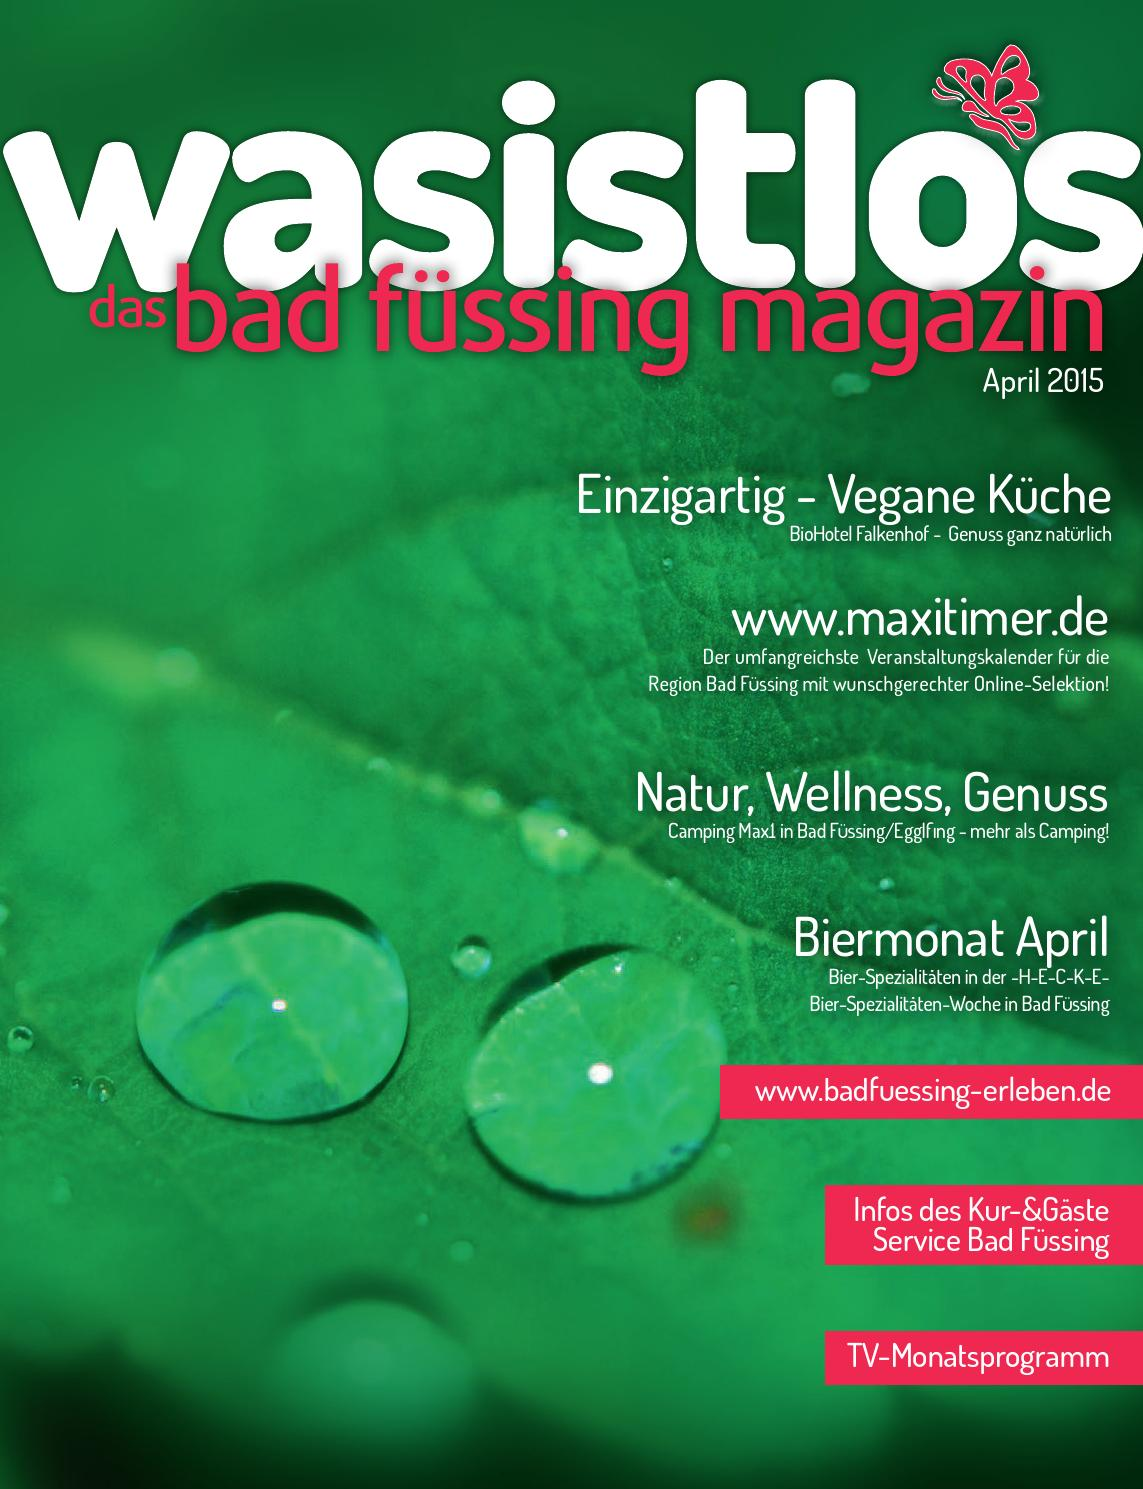 Bad Füssing Magazin - wasistlos - aktuell Bad Füssing erleben April ...